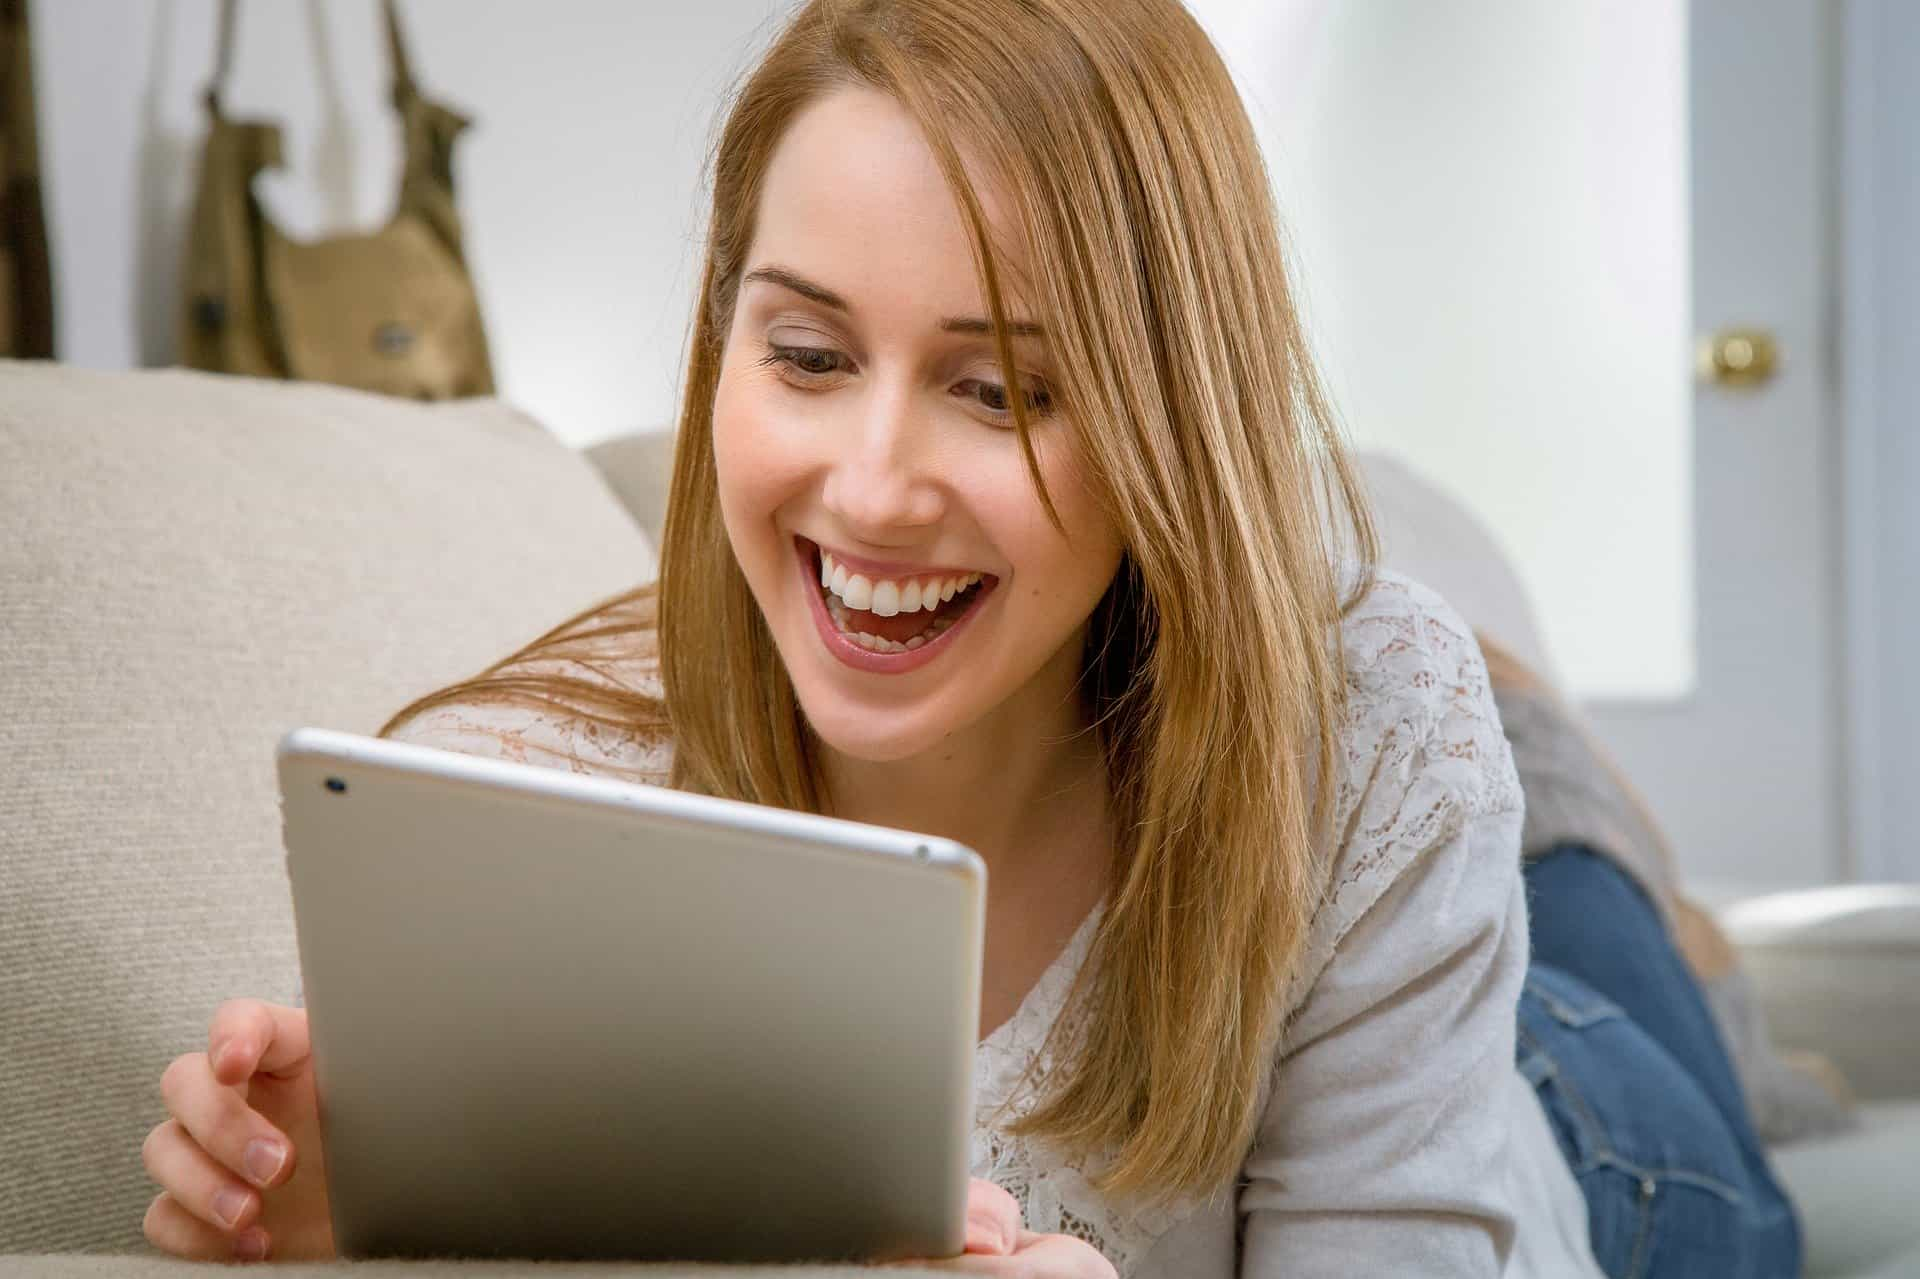 Image showing a female remote worker enjoying a virtual chat